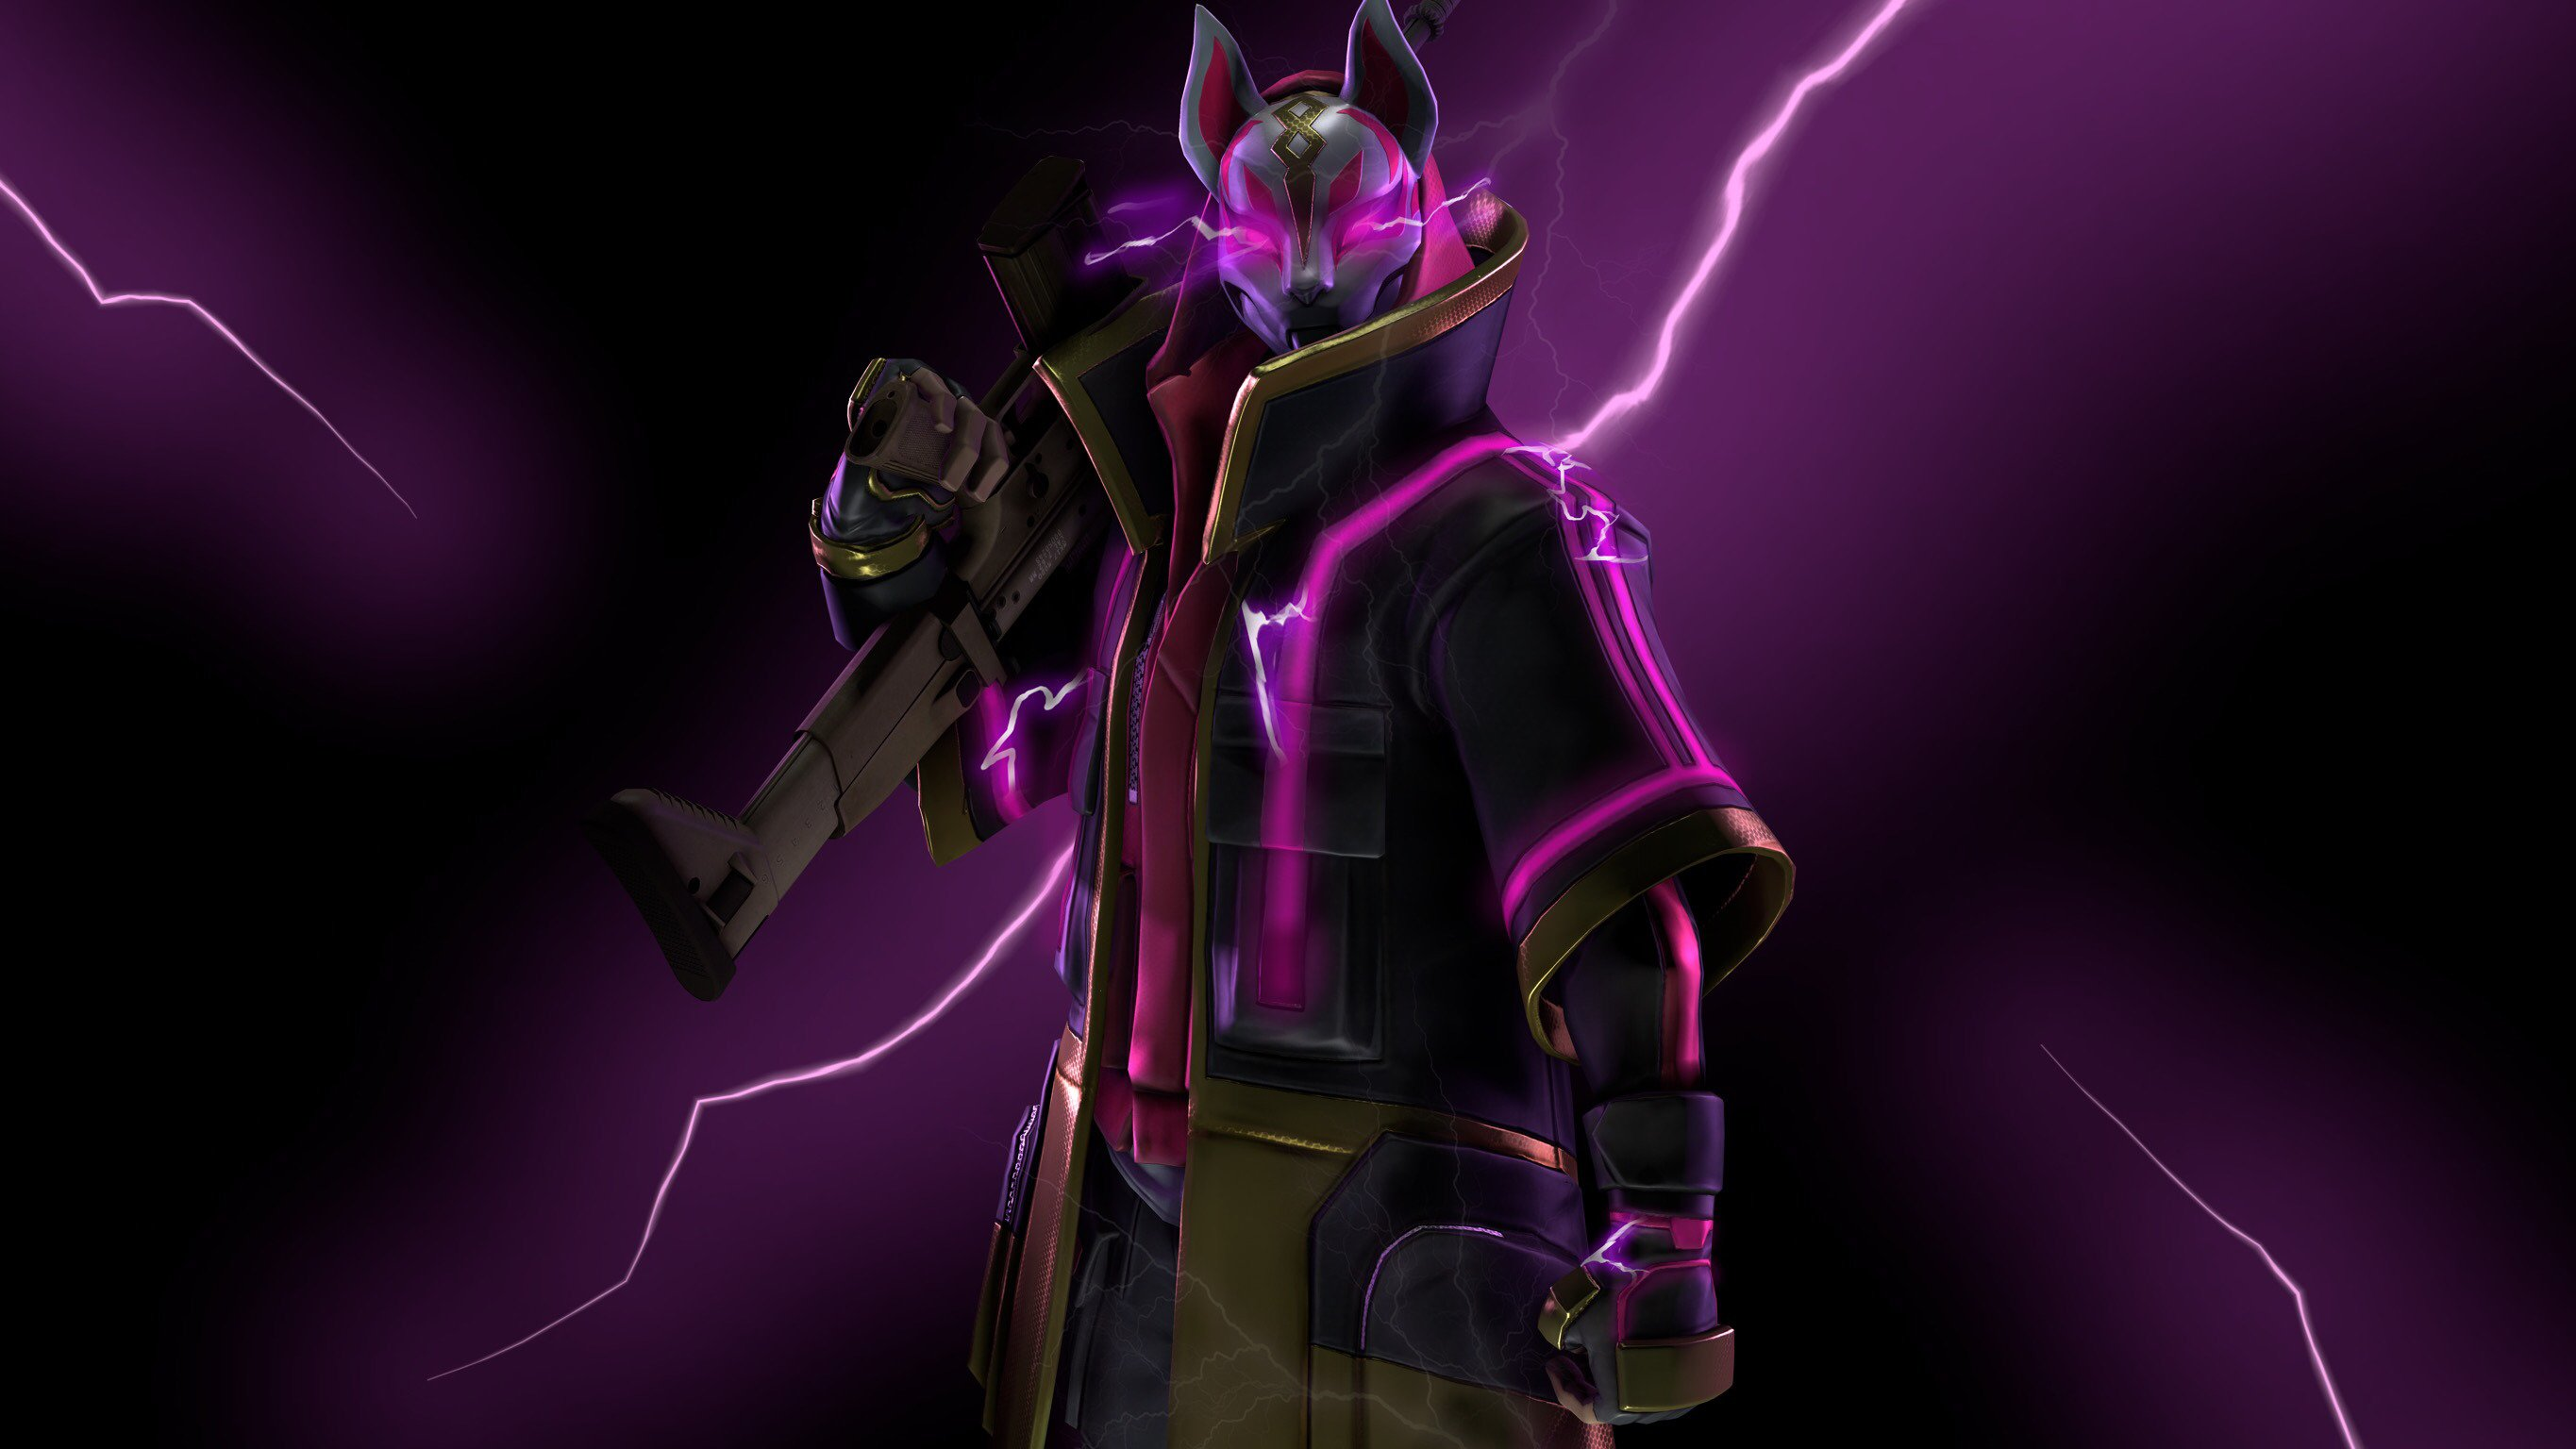 Amazing Fortnite Drift Wallpaper by Ziagy 4289 Wallpapers and 2730x1536